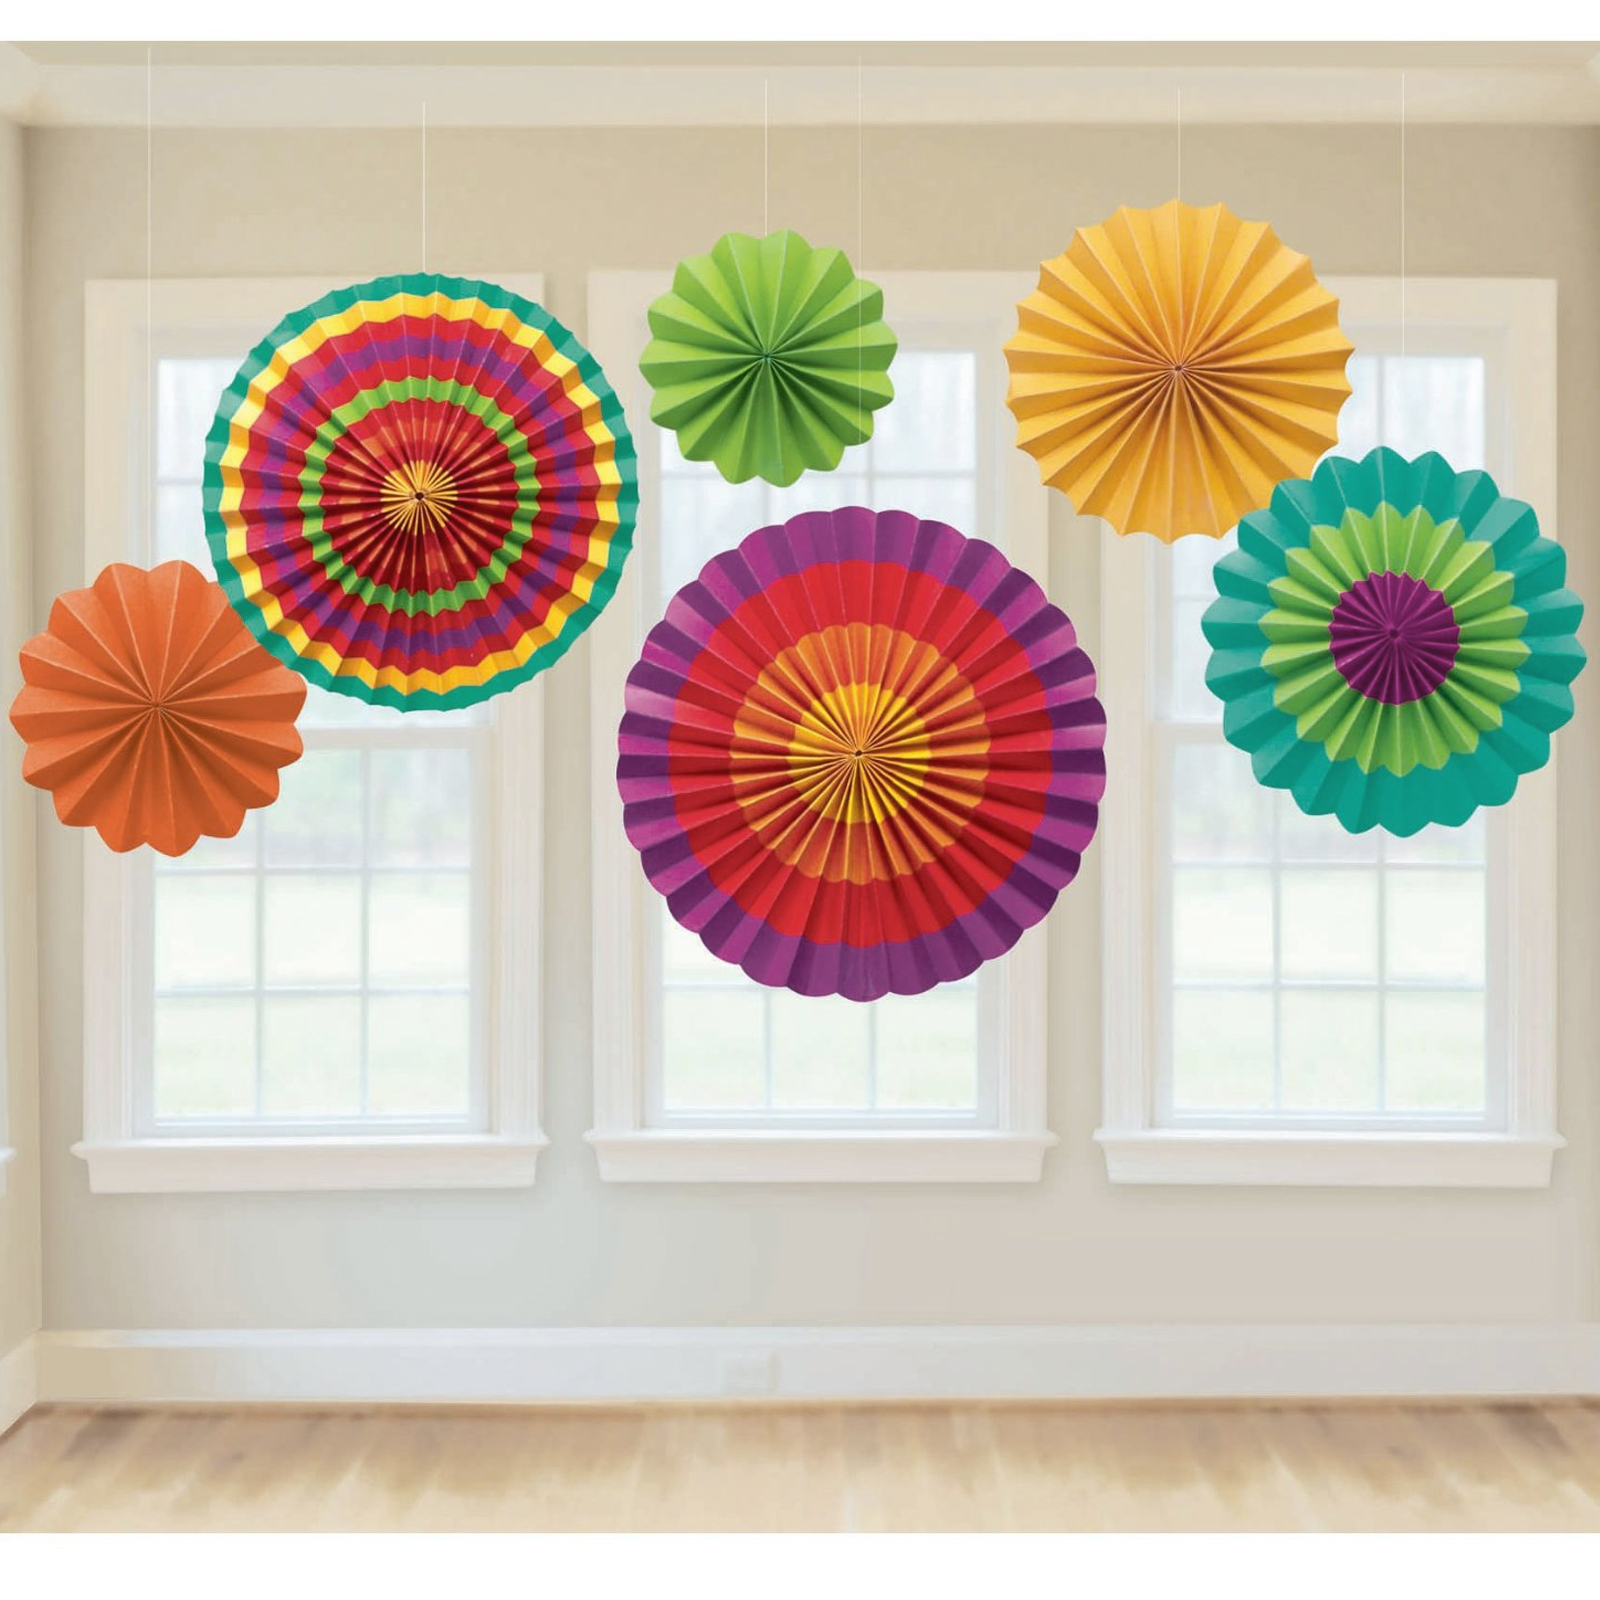 new fiesta paper fan decoration 6 colorful fans cinco de mayo southwestern party ebay. Black Bedroom Furniture Sets. Home Design Ideas